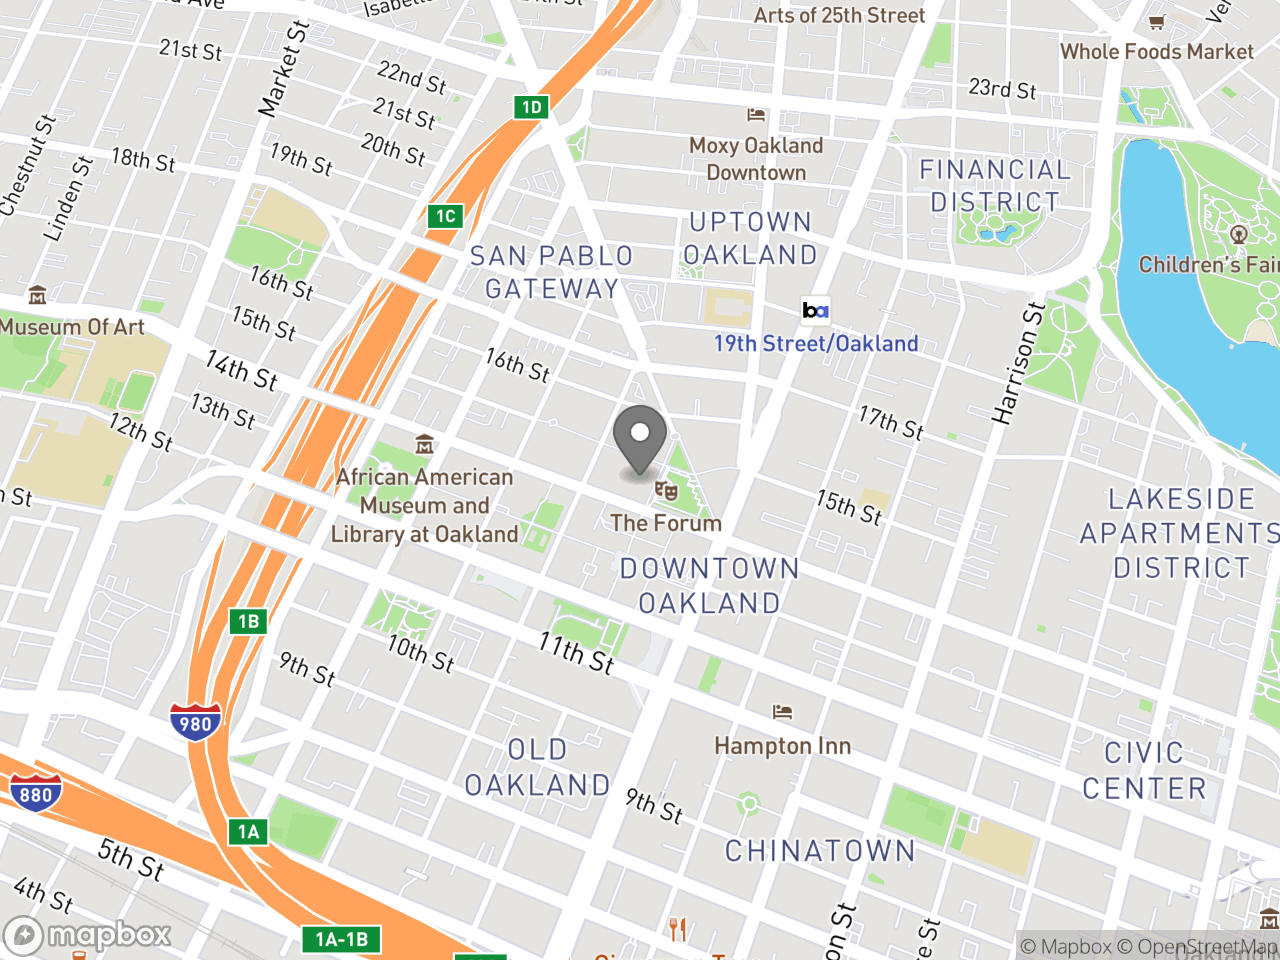 Map image for Public Ethics Commission Monthly Meeting - Cancelled, located at 1 Frank H Ogawa Plaza in Oakland, CA 94612